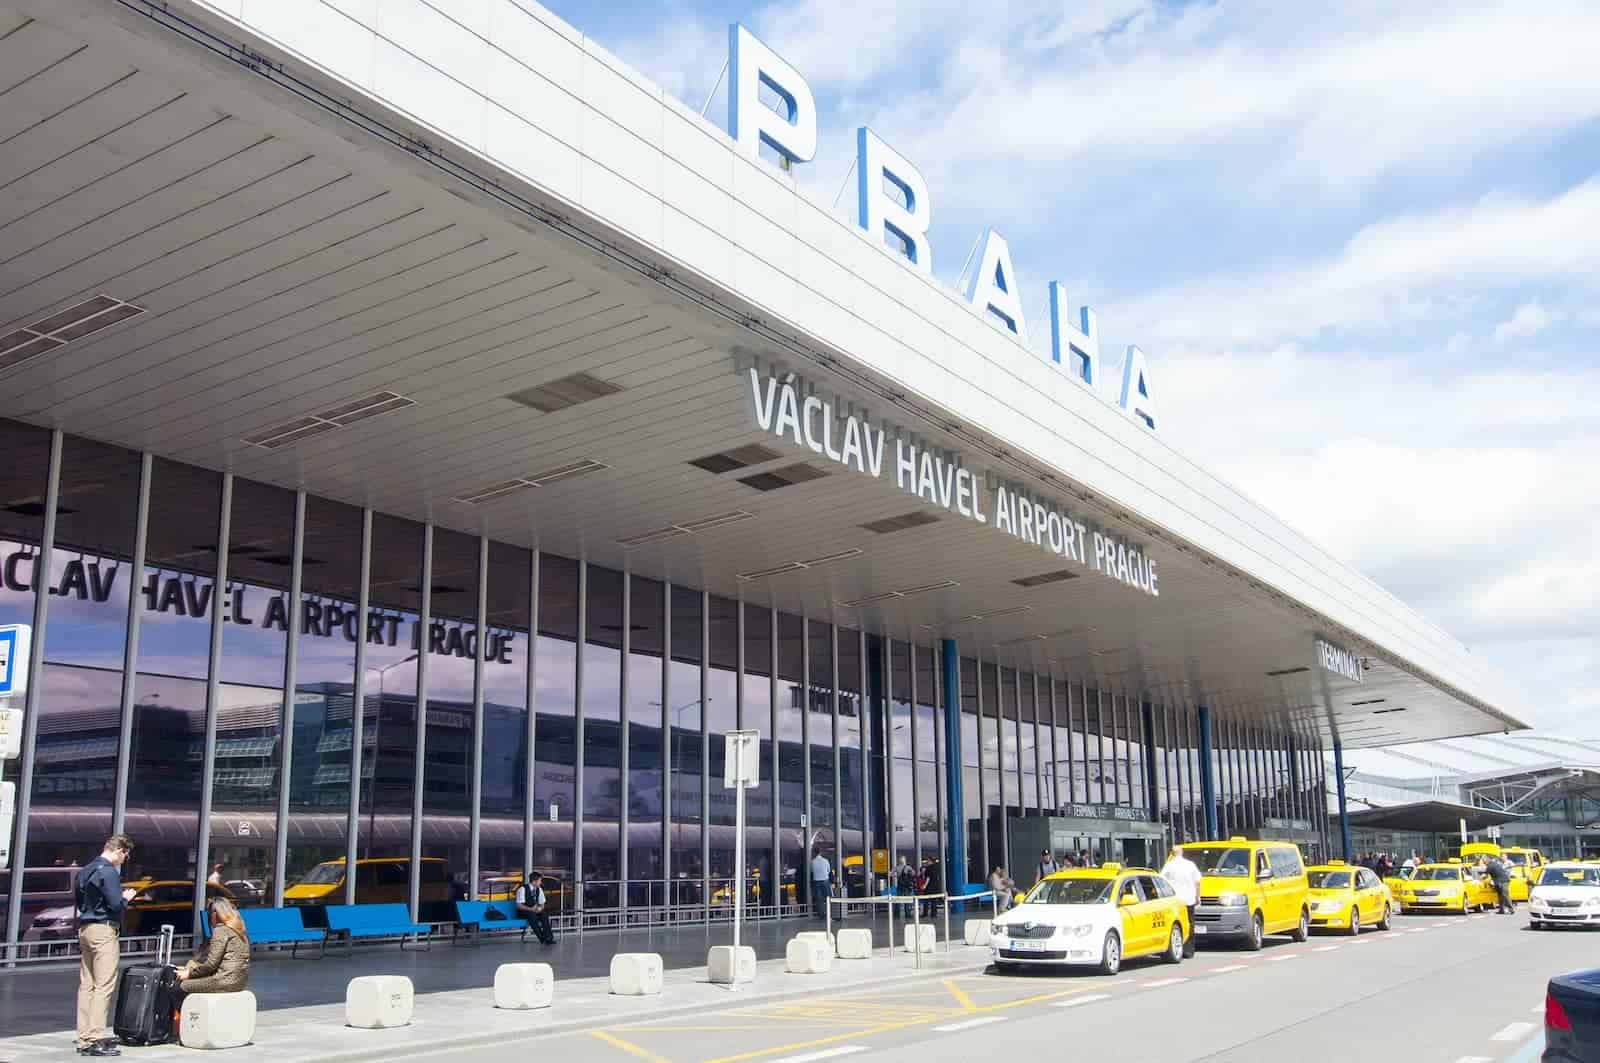 Taxi Rank outside the Prague Airport